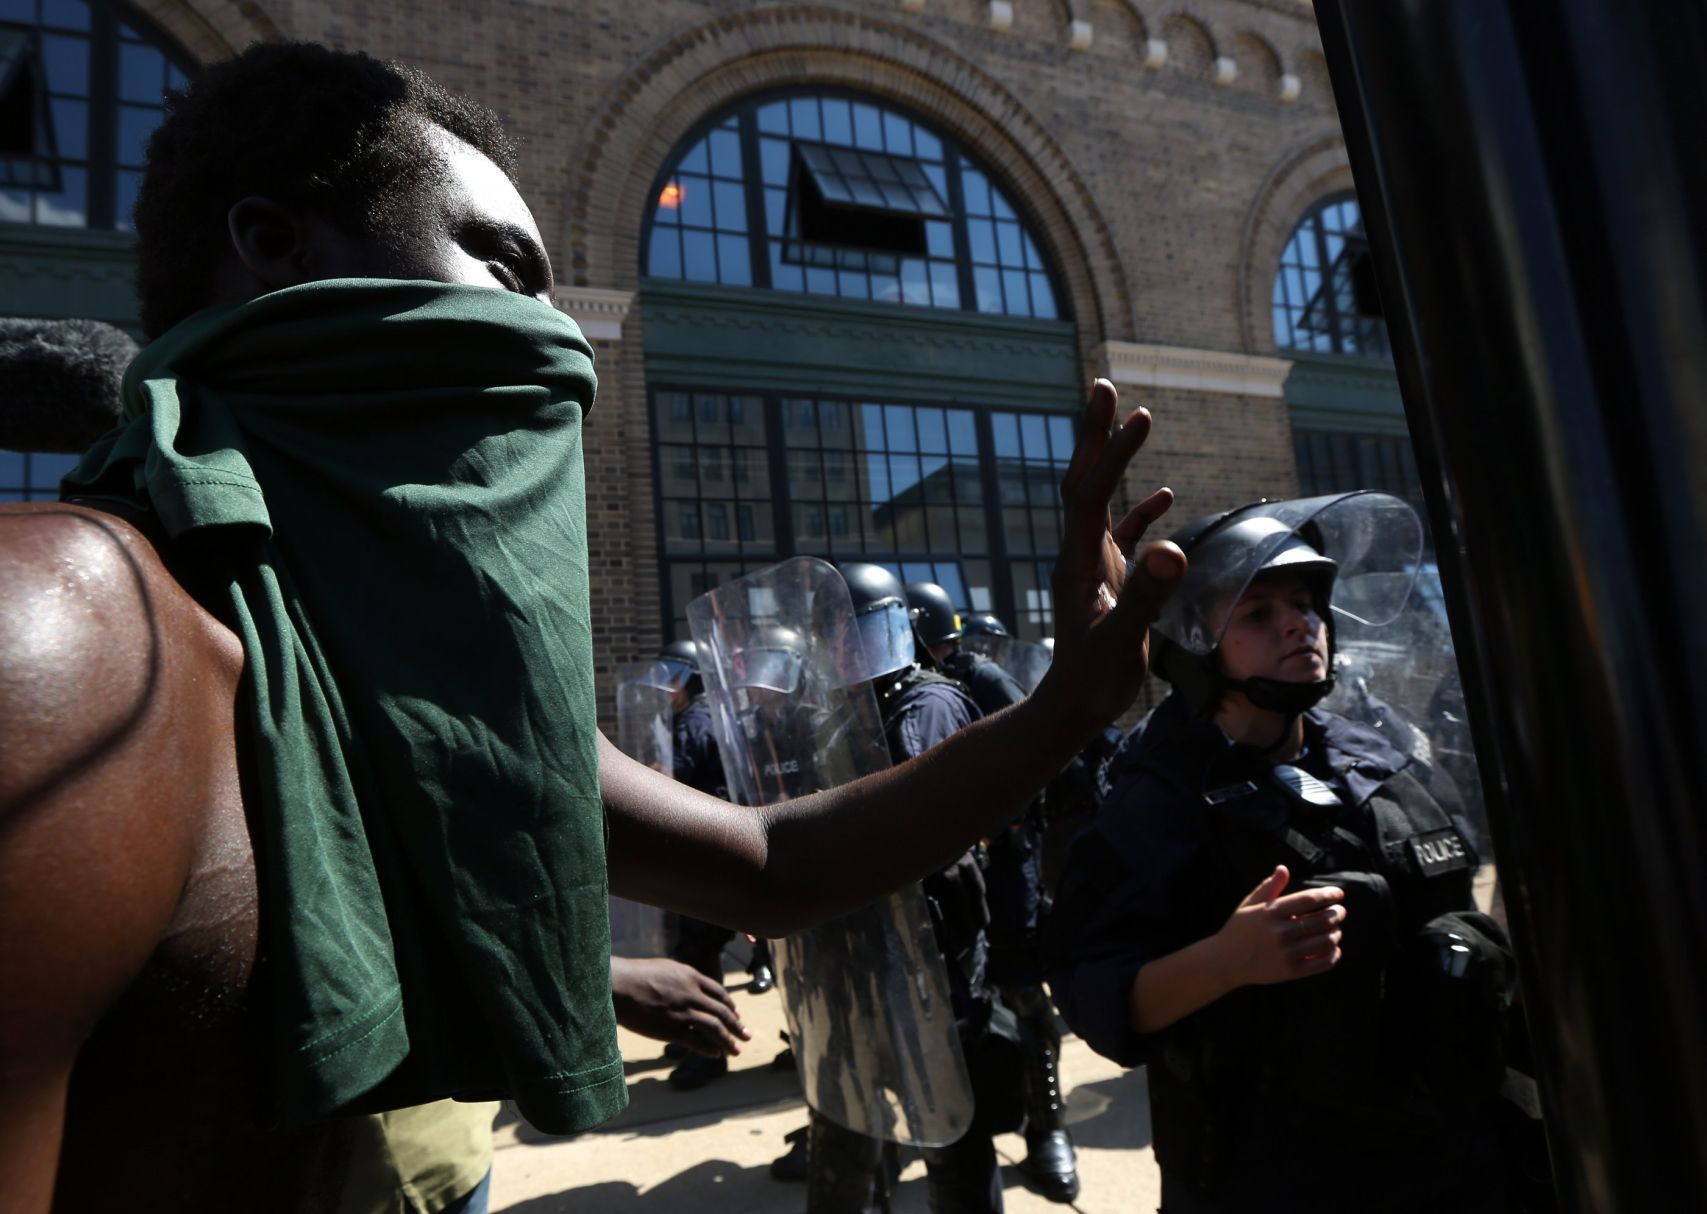 chief of police cover letter%0A Heated protests follow Stockley acquittal   Law and order   stltoday com